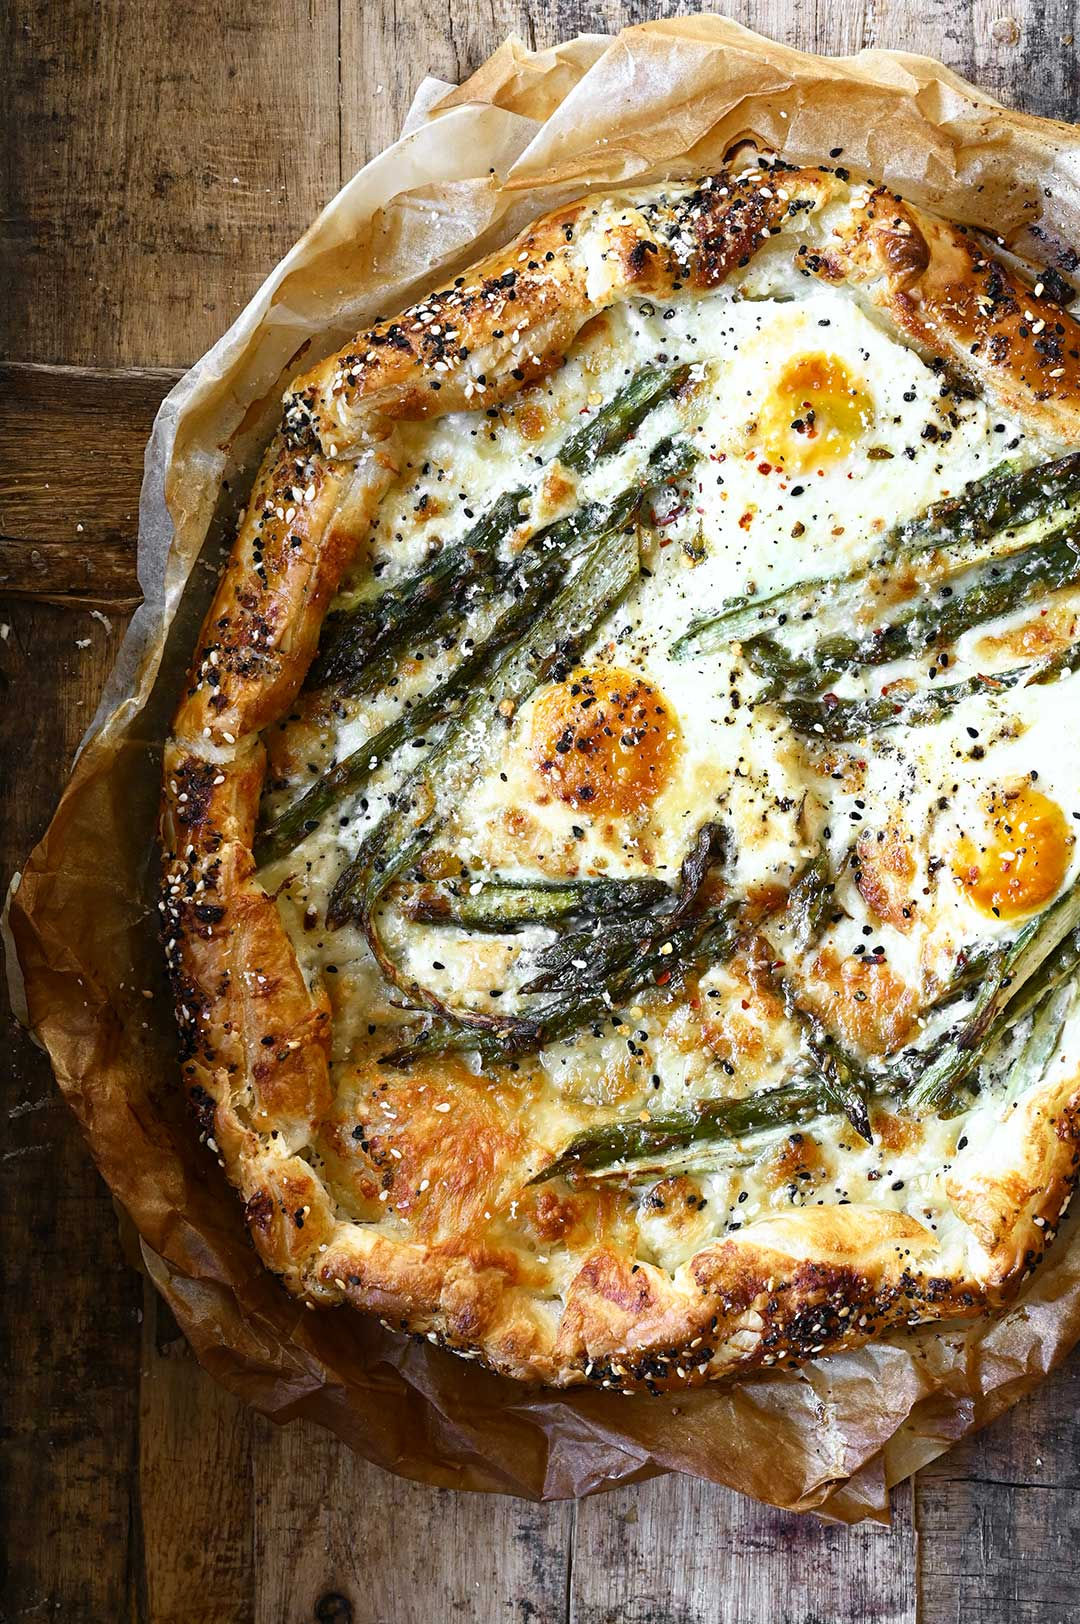 serving dumplings | Cheese and Asparagus Galette